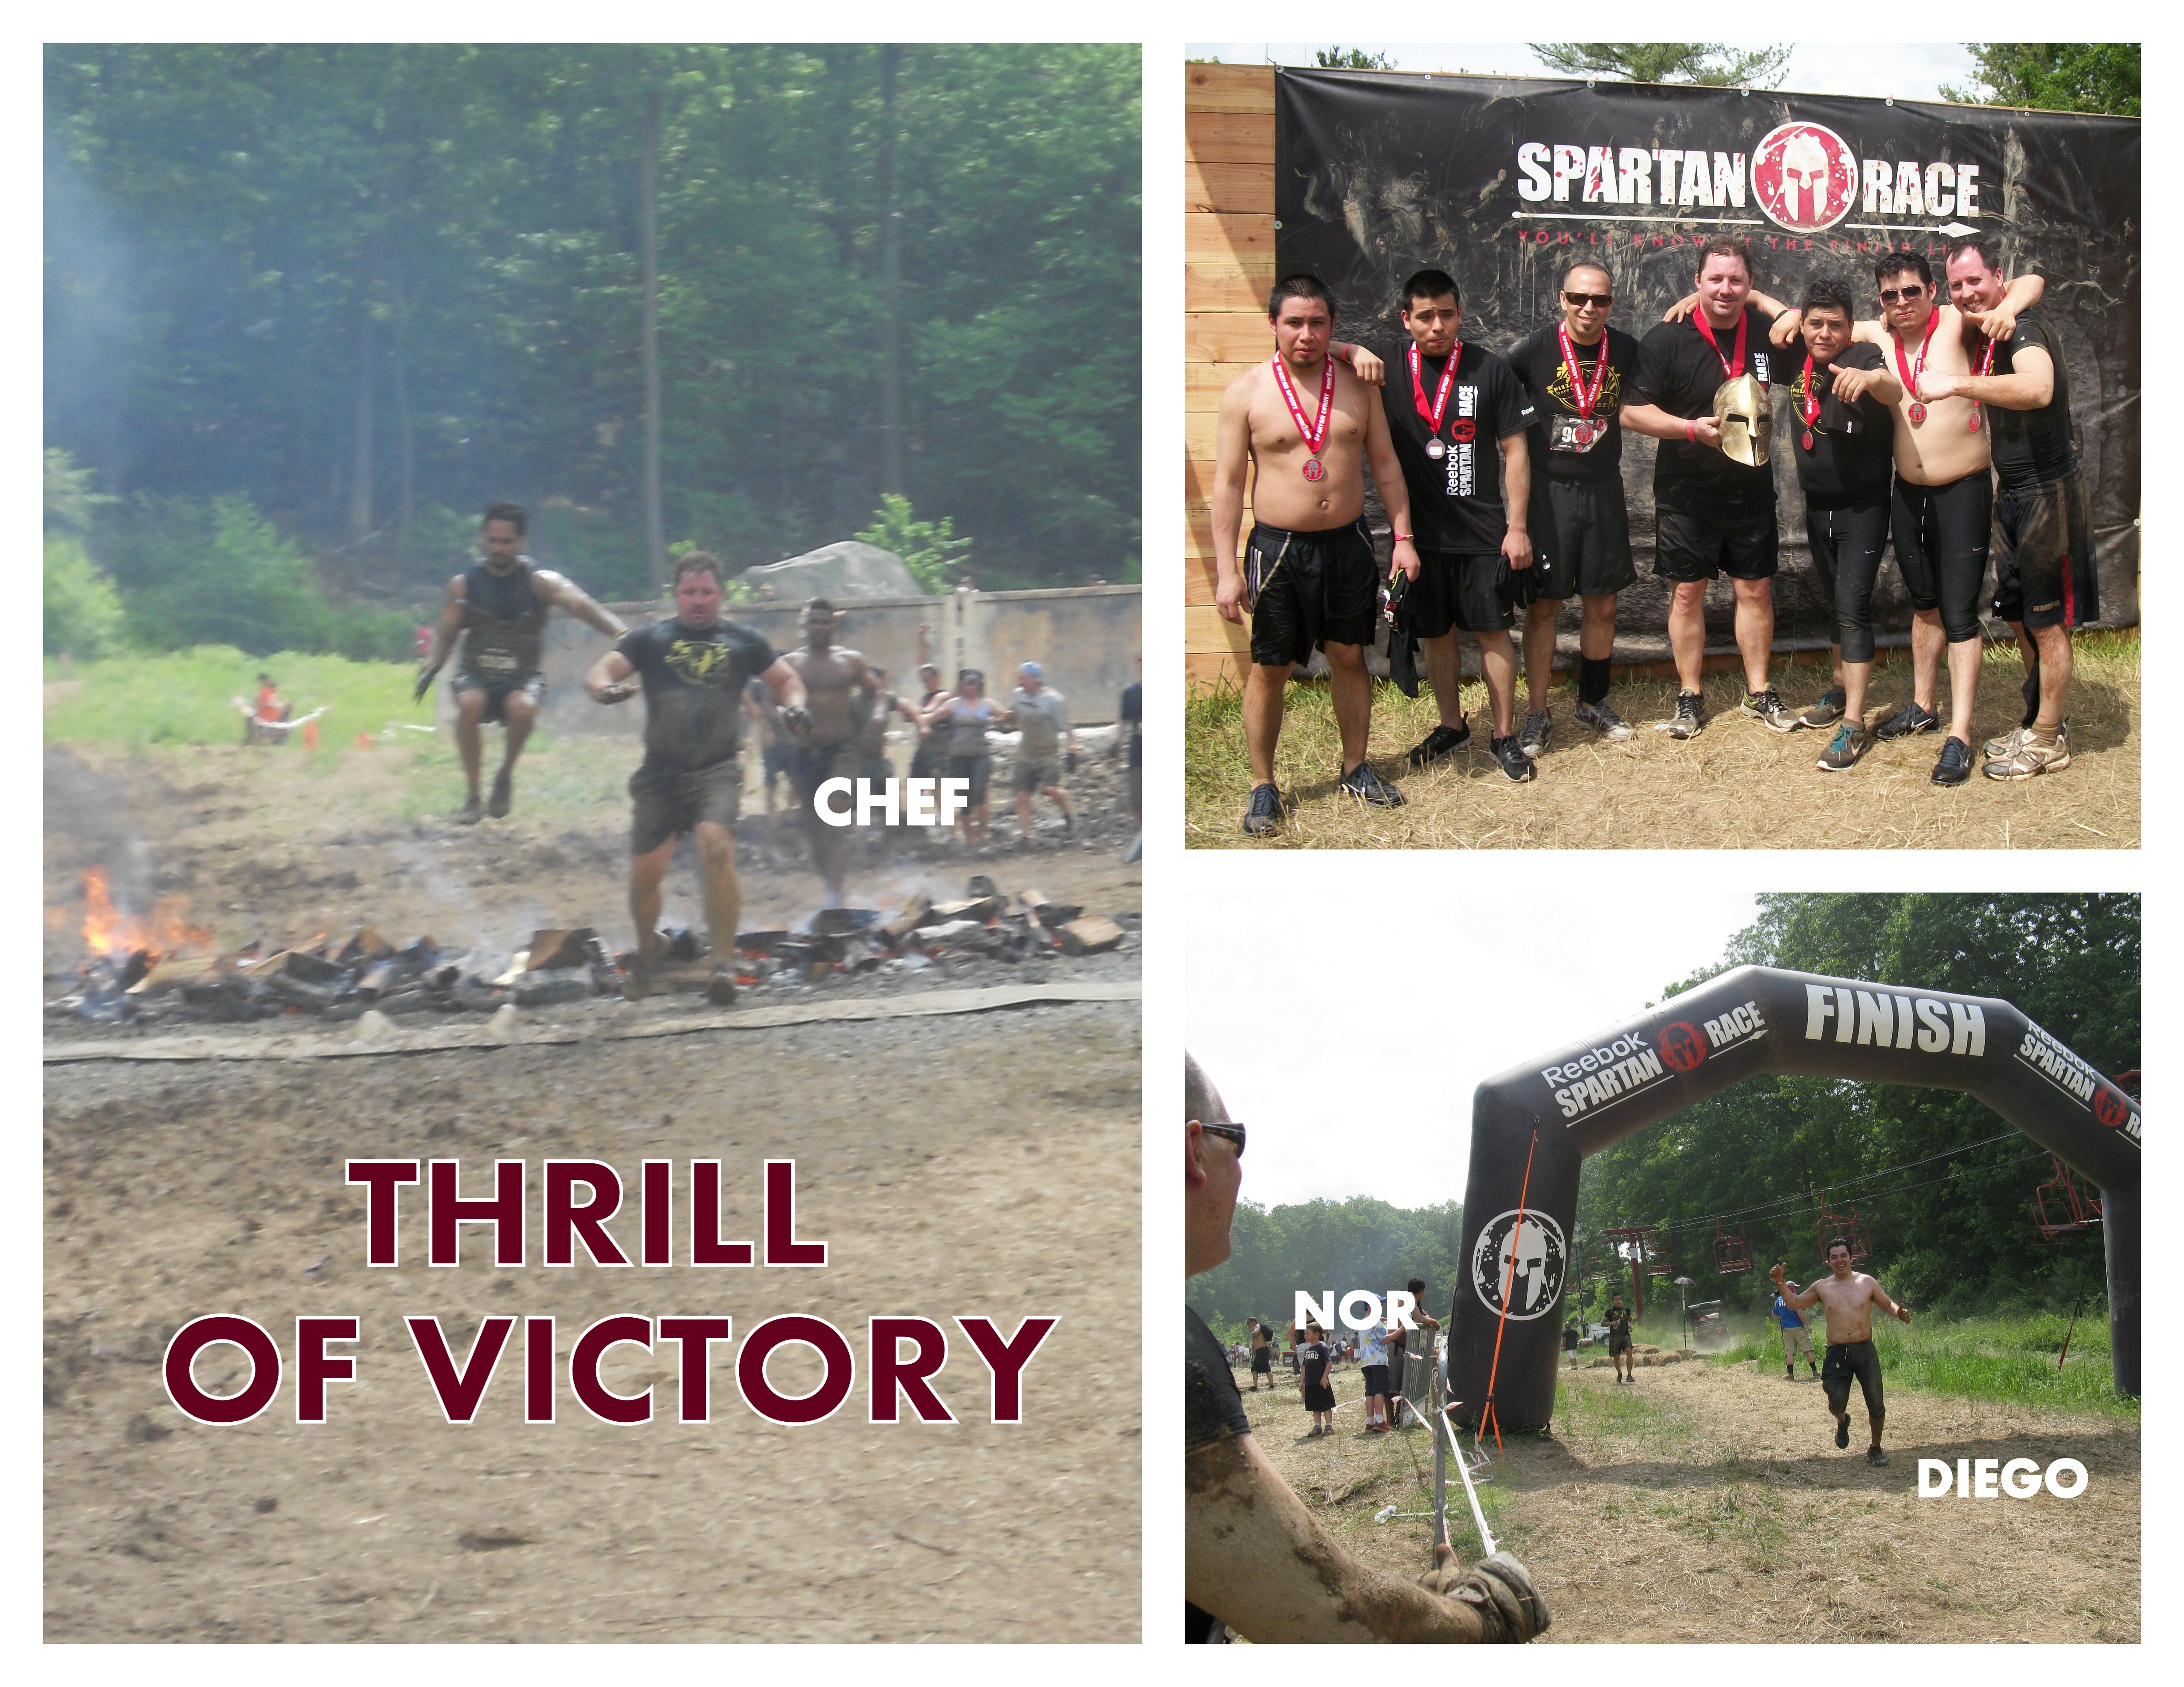 Spartan Race 2013. Collage.THRILL OF VICTORY